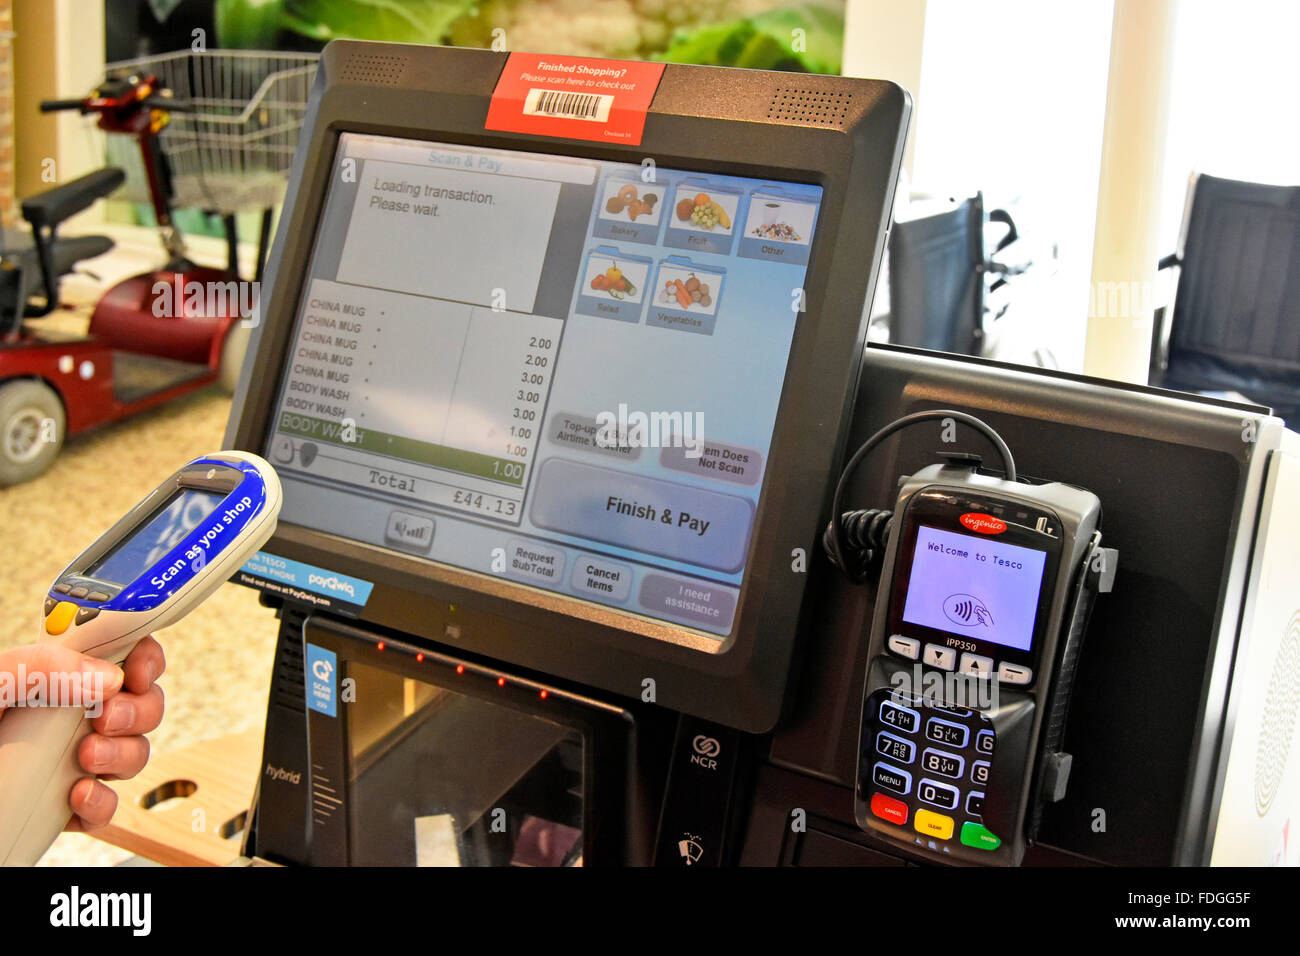 Tesco shopper aiming her Scan as you shop device to upload shopping items onto screen for payment & self checkout Stock Photo